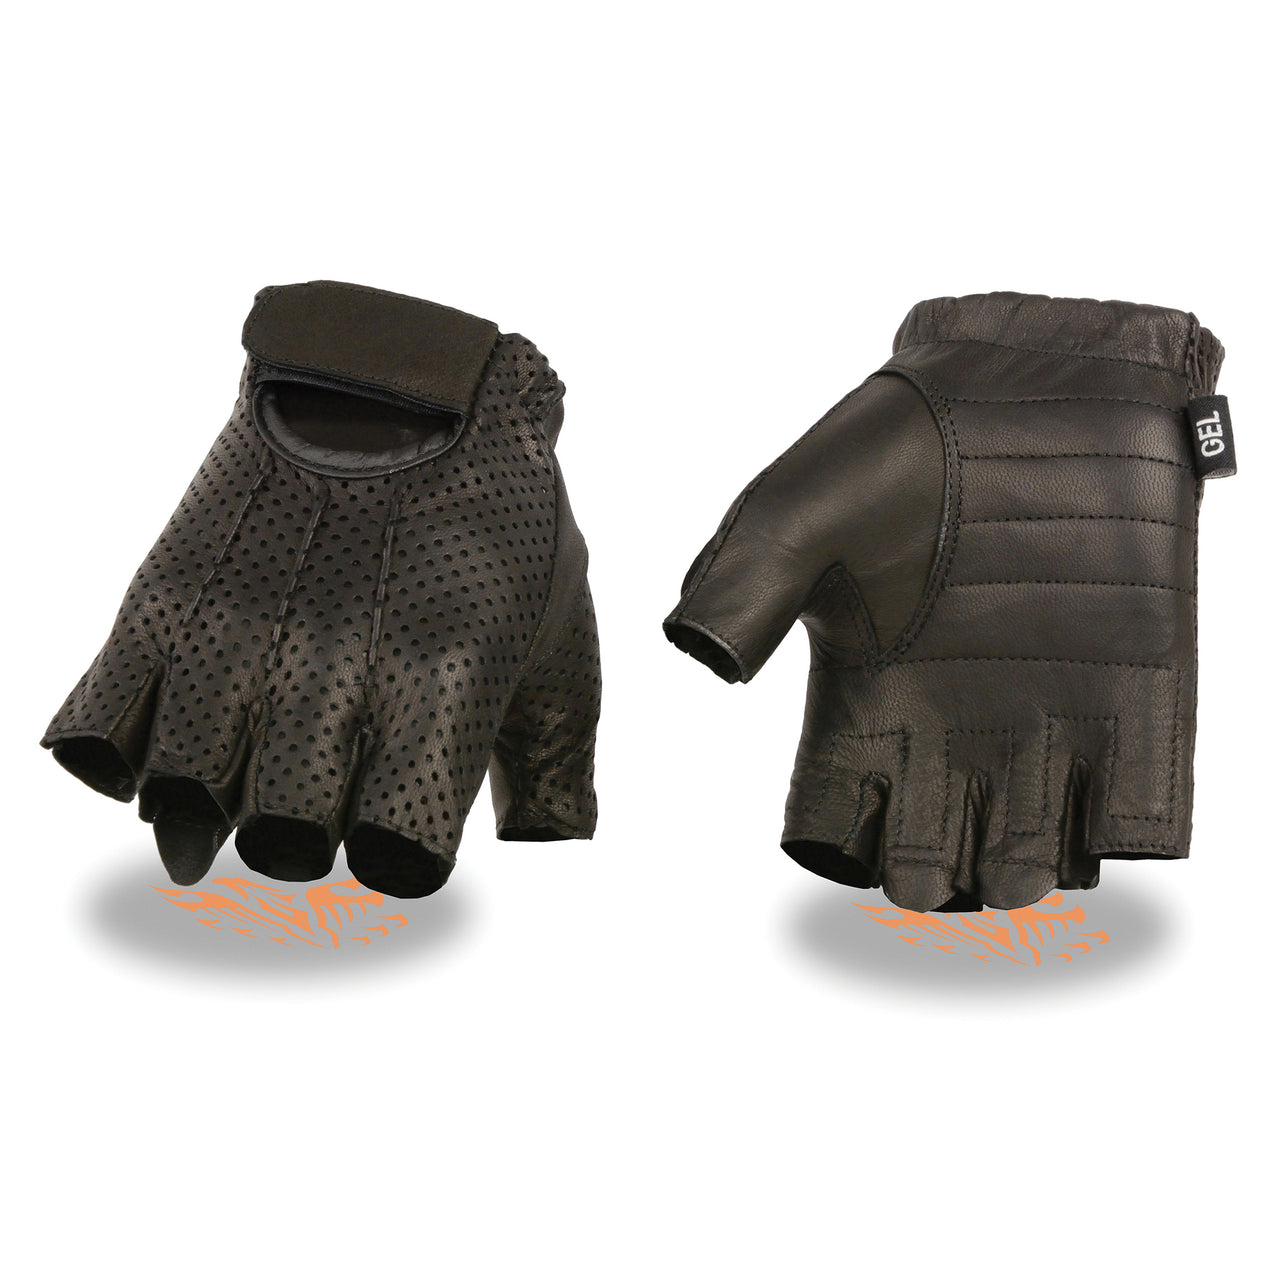 Men's Perforated Fingerless Gloves w/ Gel Palm - HighwayLeather